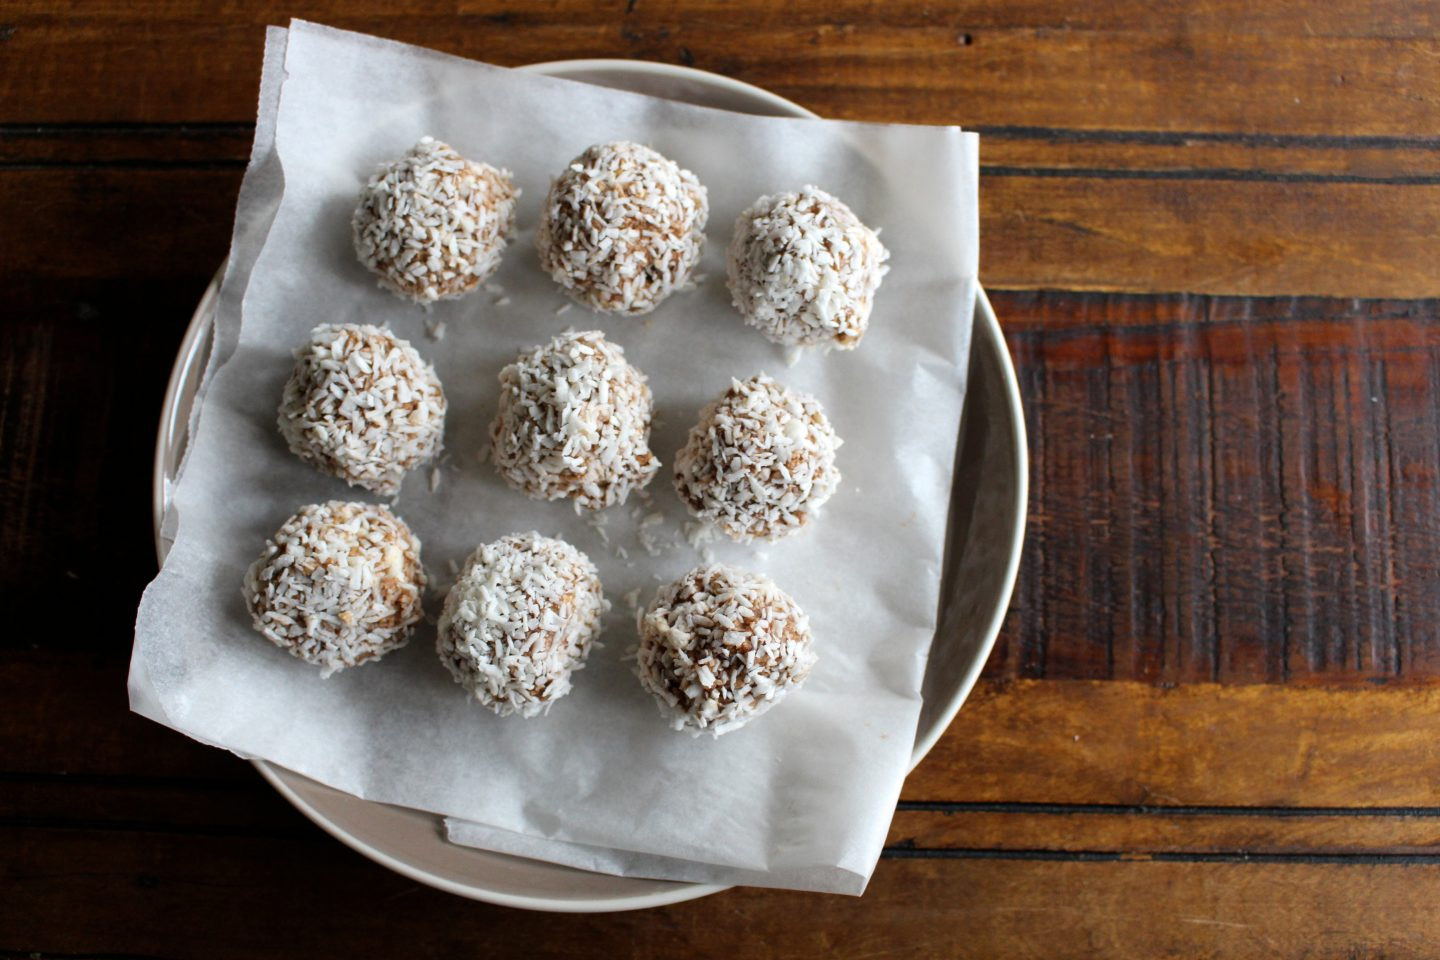 High Protein Snack Balls with Wedges & Weights!